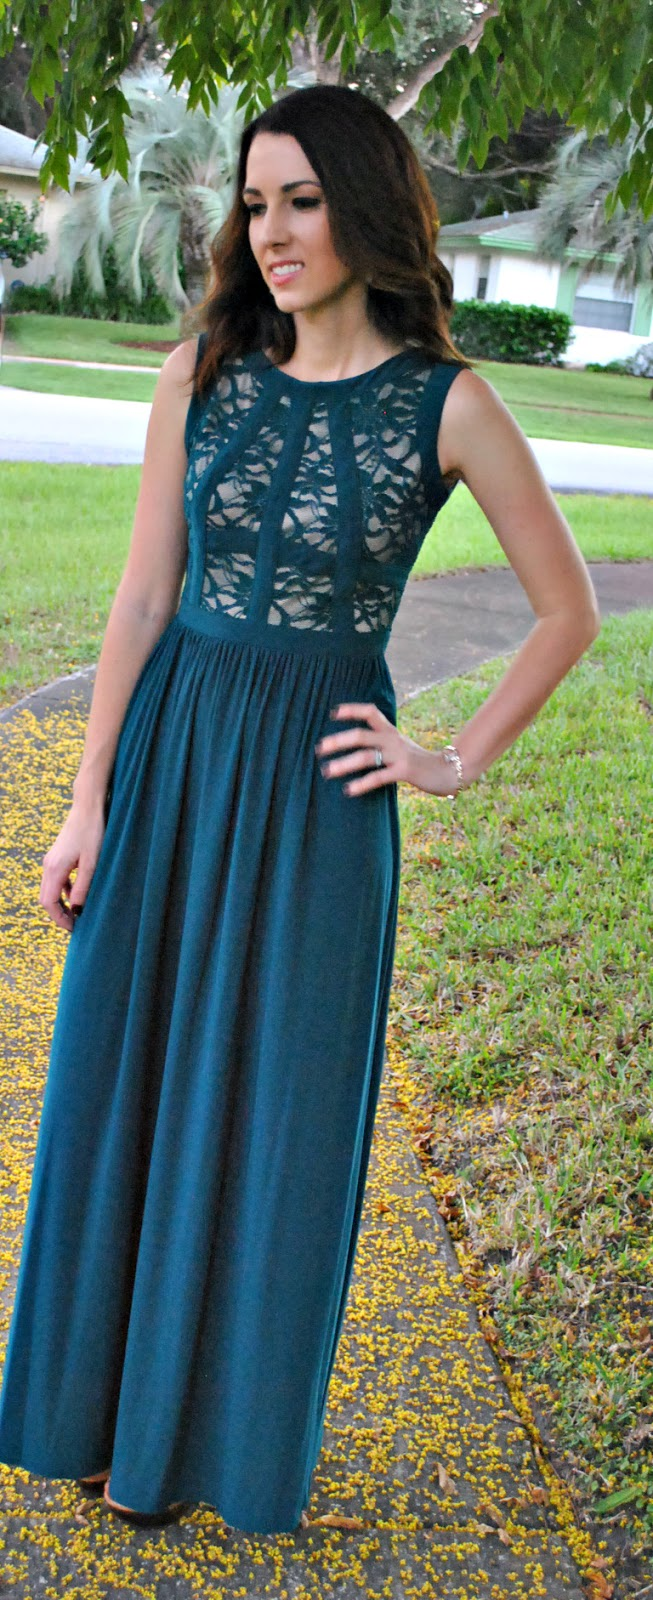 Nordstrom Jax Gala attire, Just Me aghan fashion blogger